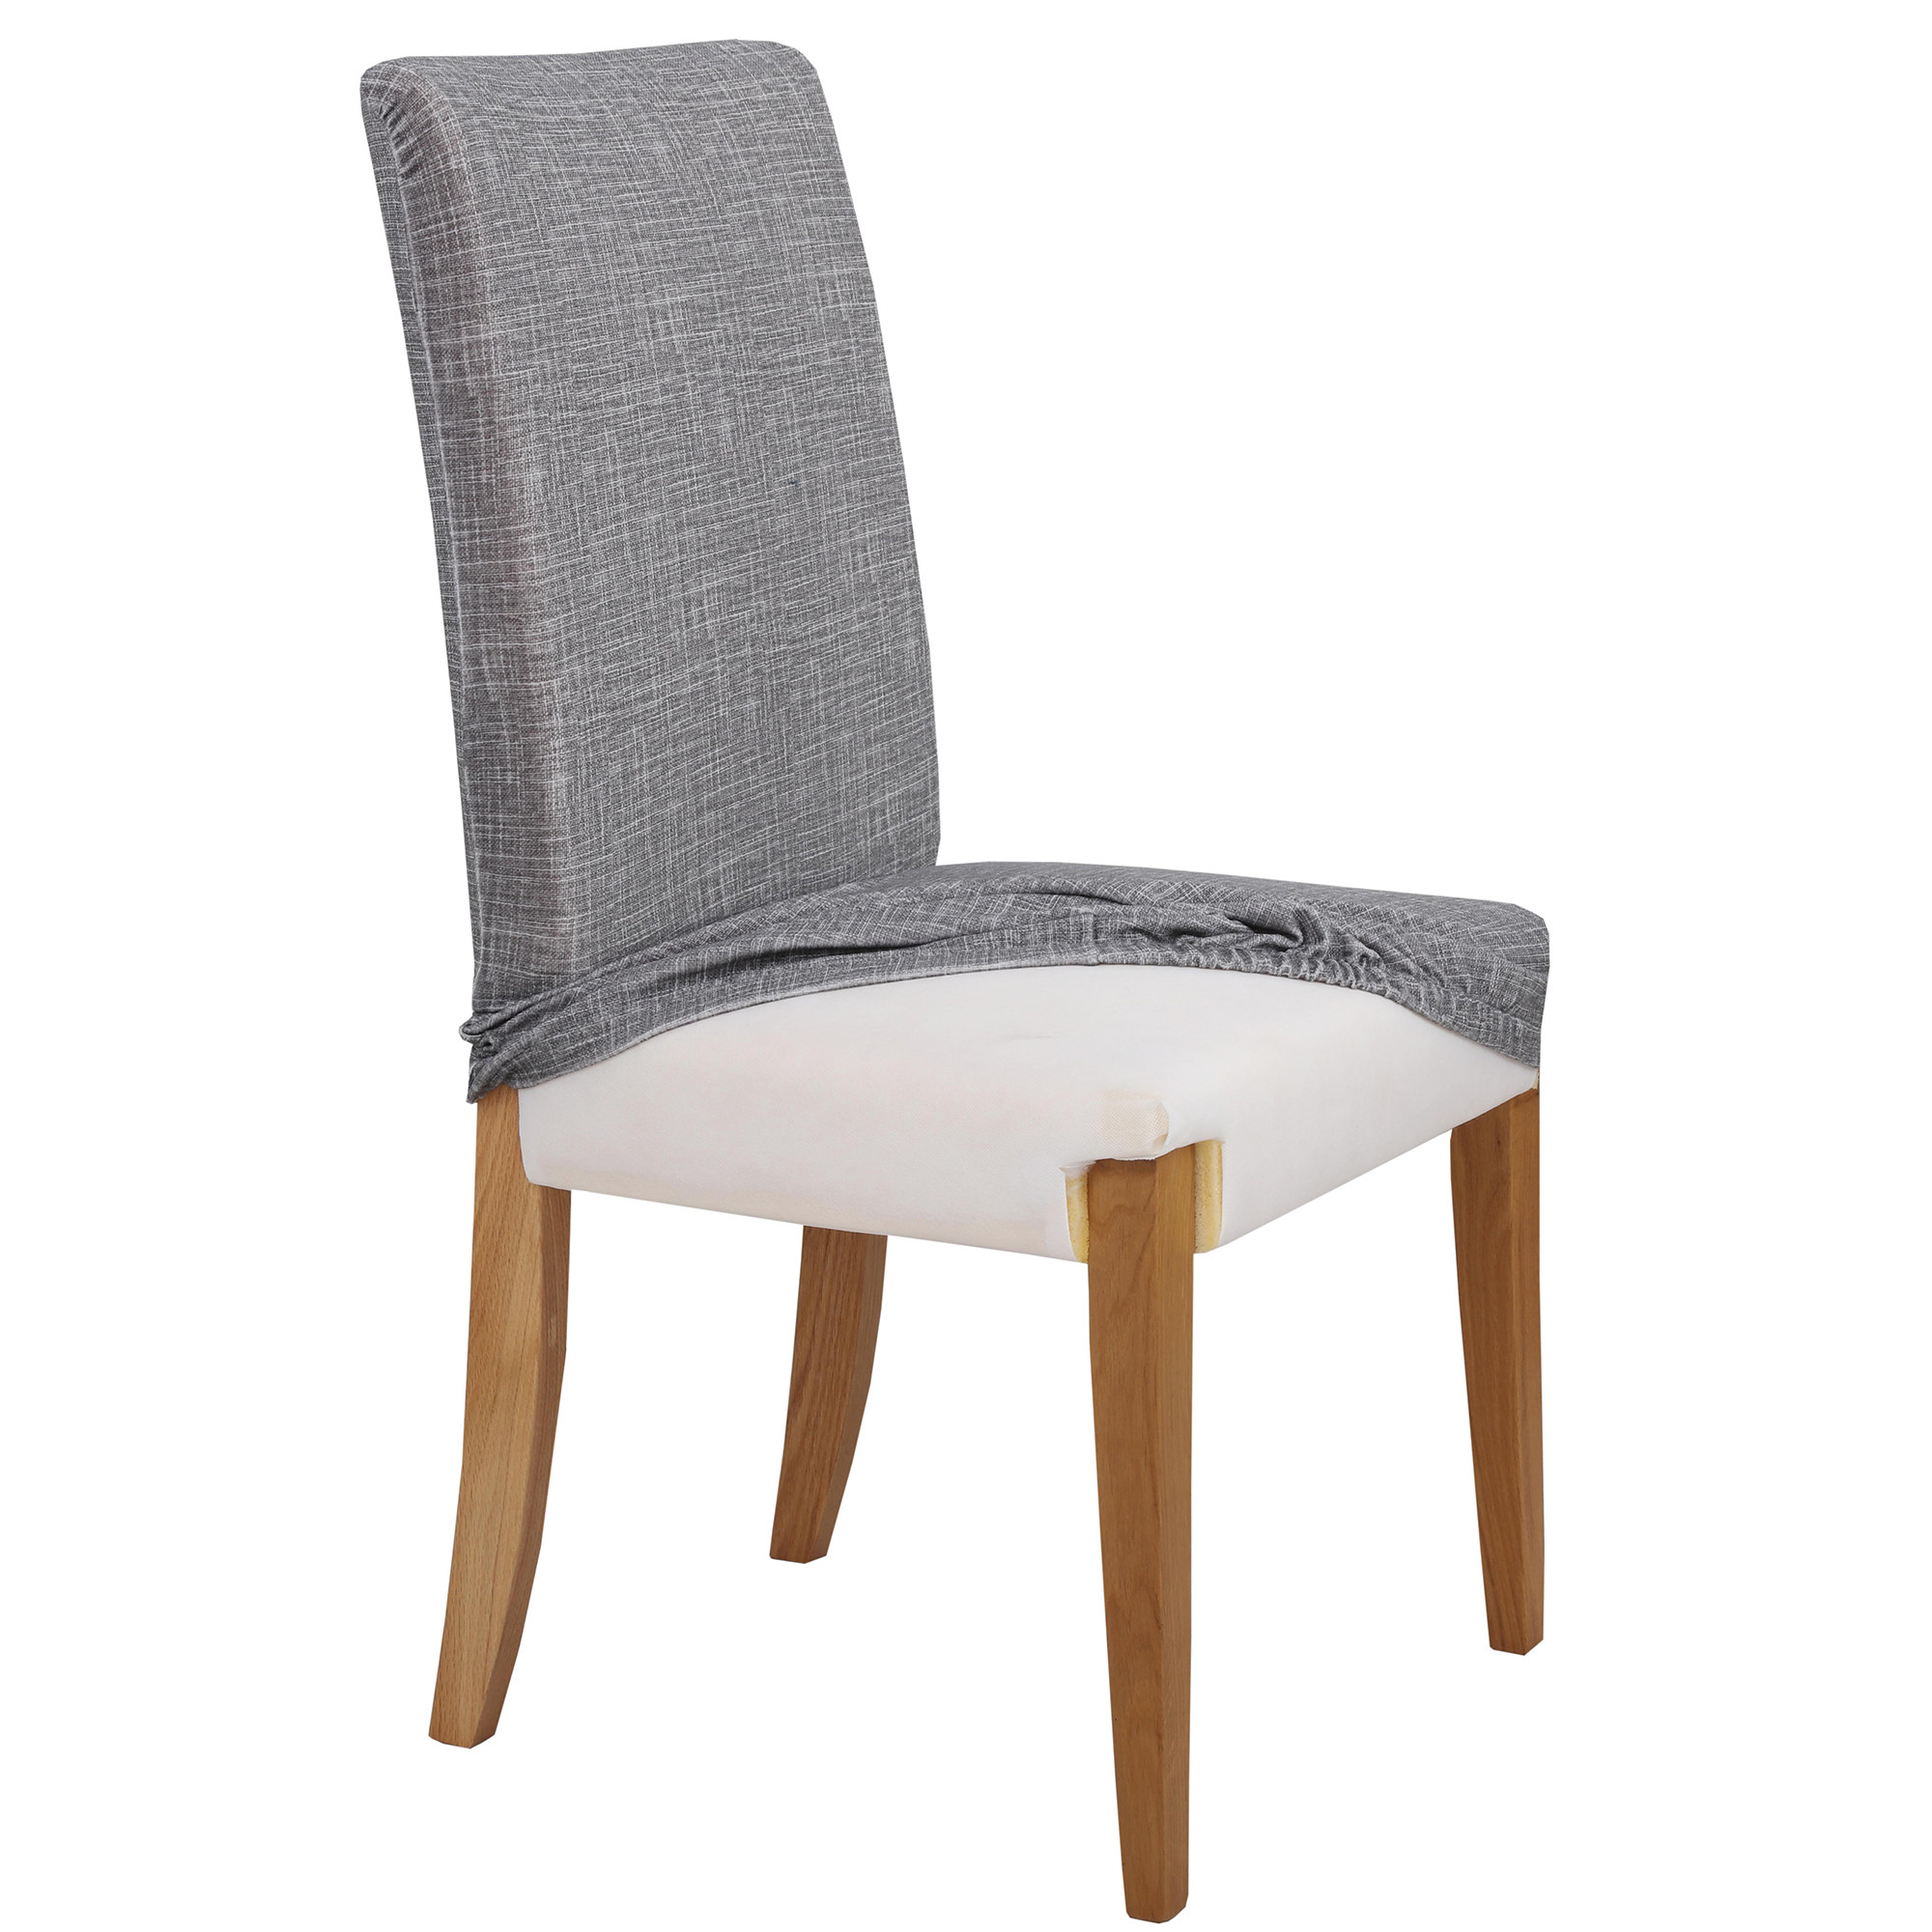 SKU #HOMI1048 Grey Stretch Dining Room Chair Cover Is Also Sometimes Listed  Under The Following Manufacturer Numbers: 58453, 58453x2, 58453x4